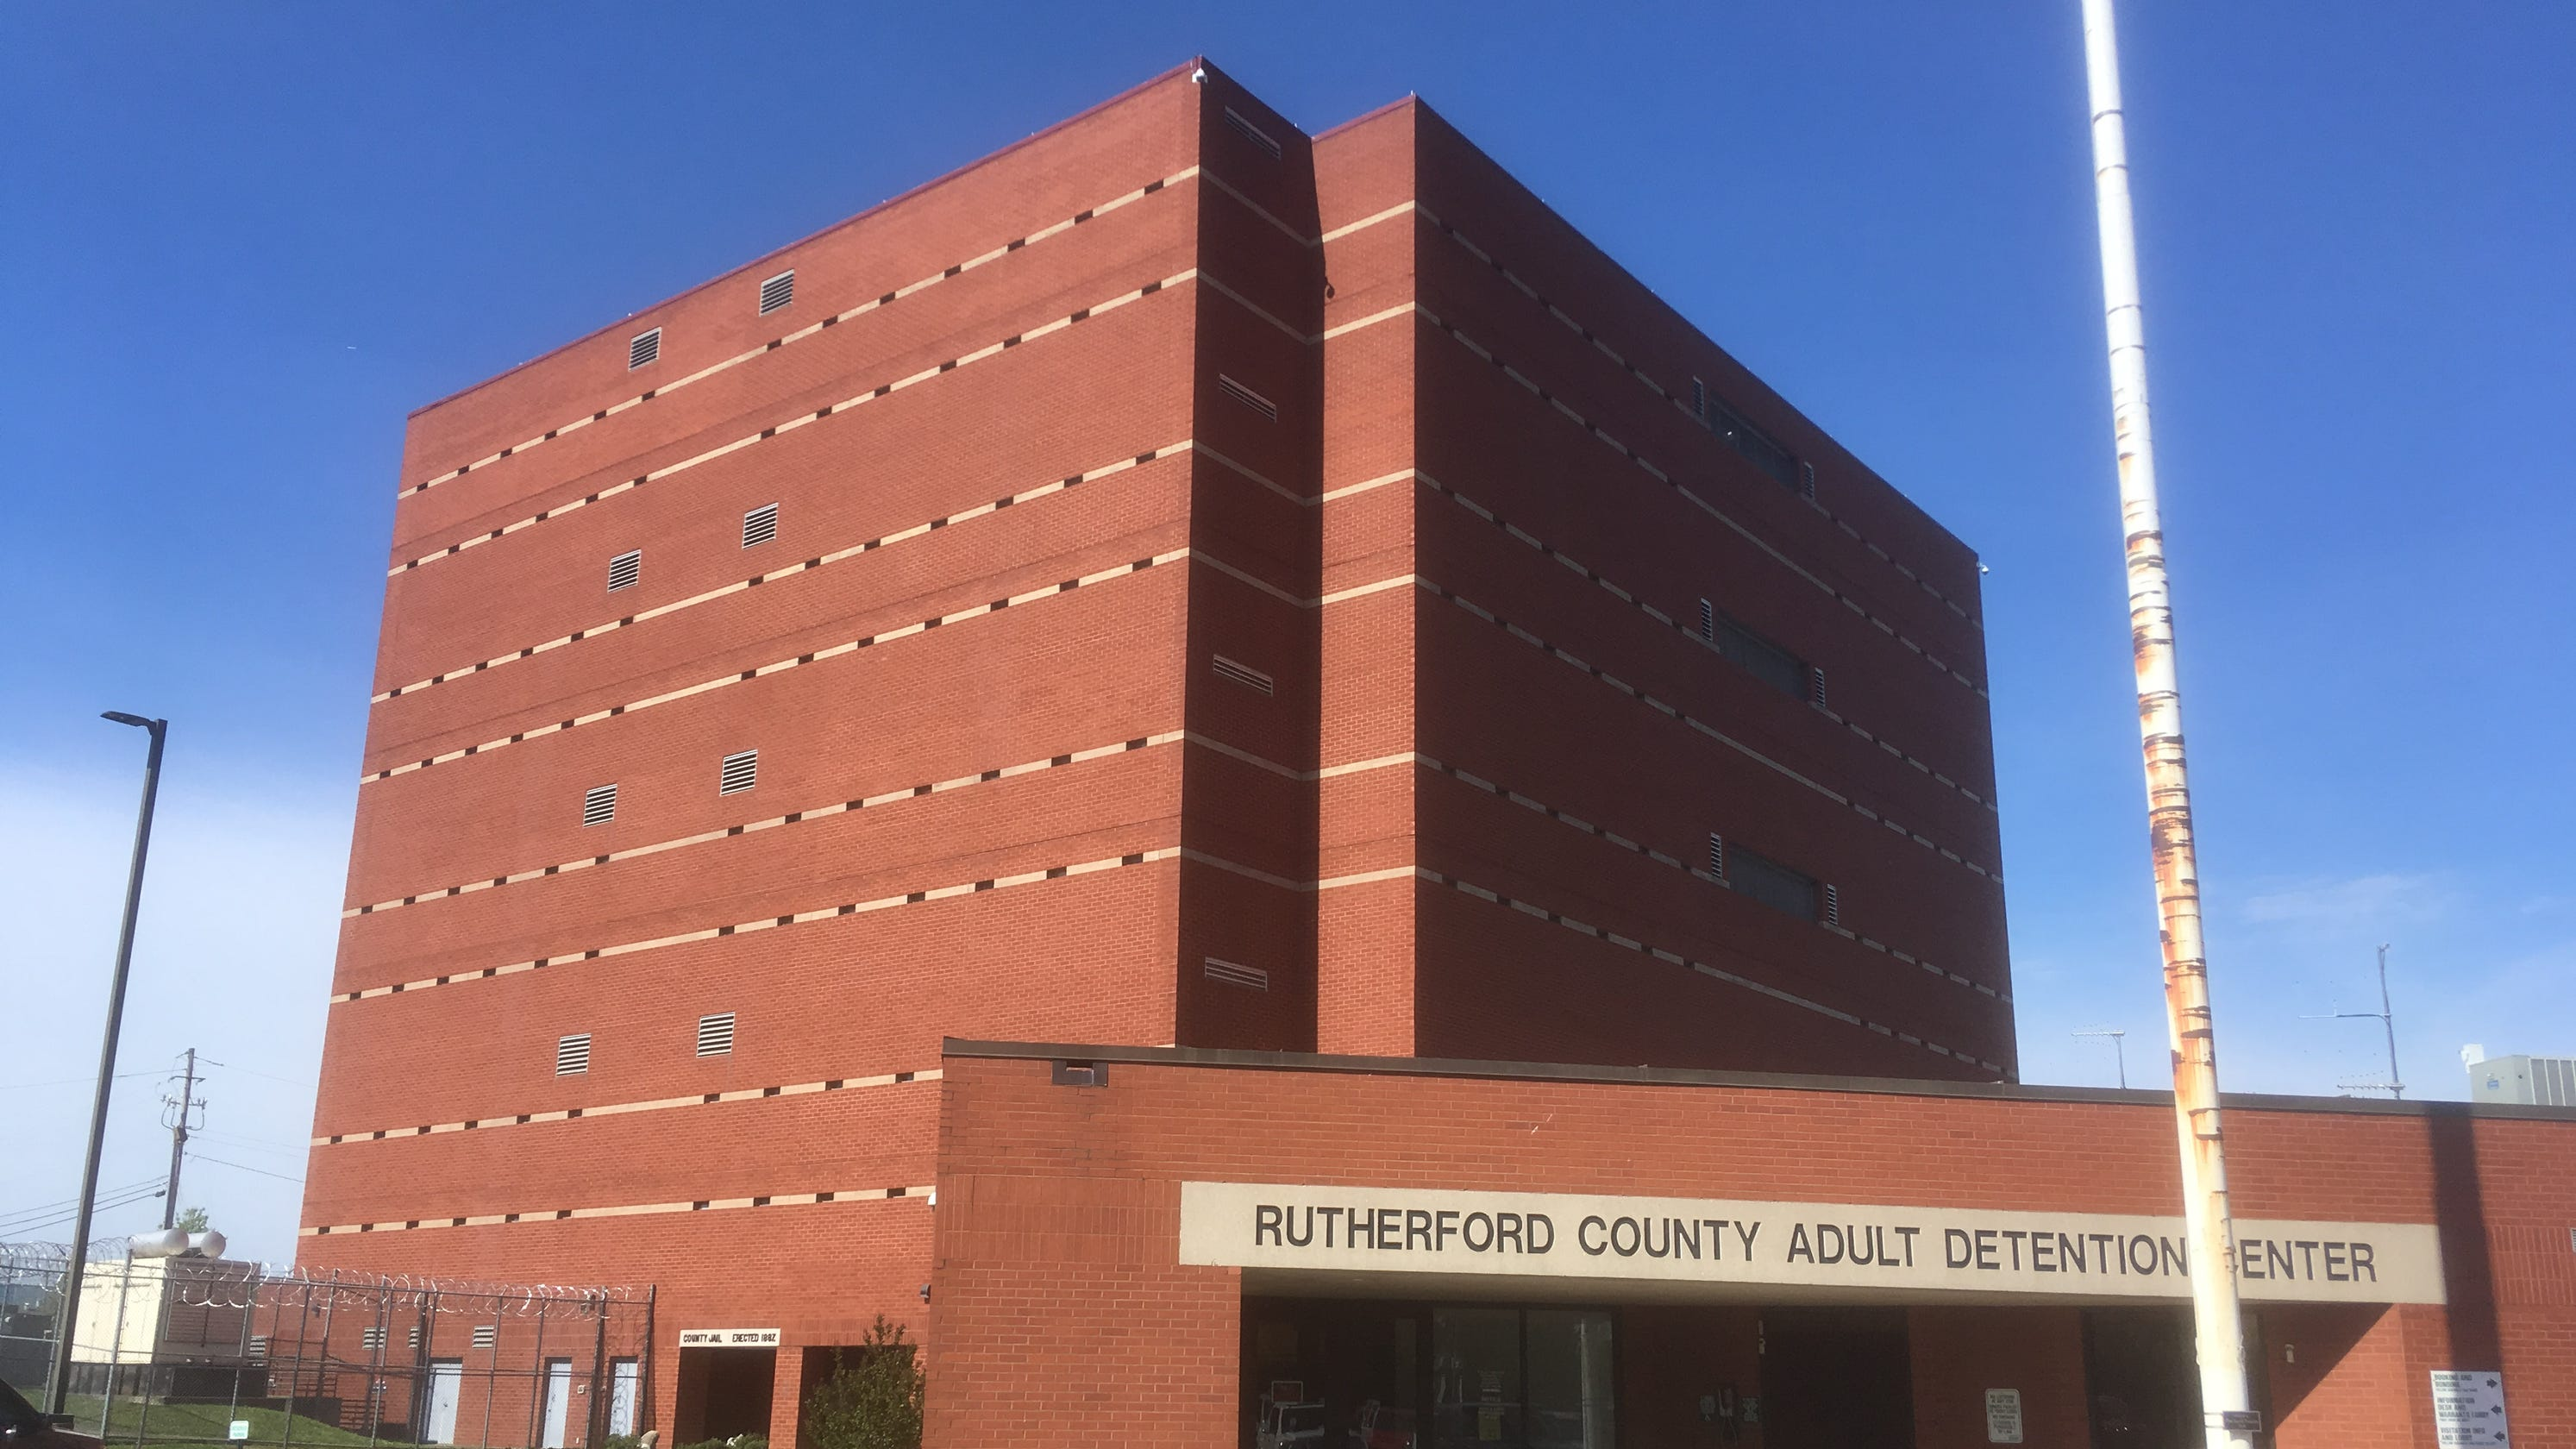 Bail bondsmen doubtful Rutherford County pretrial release plan will work